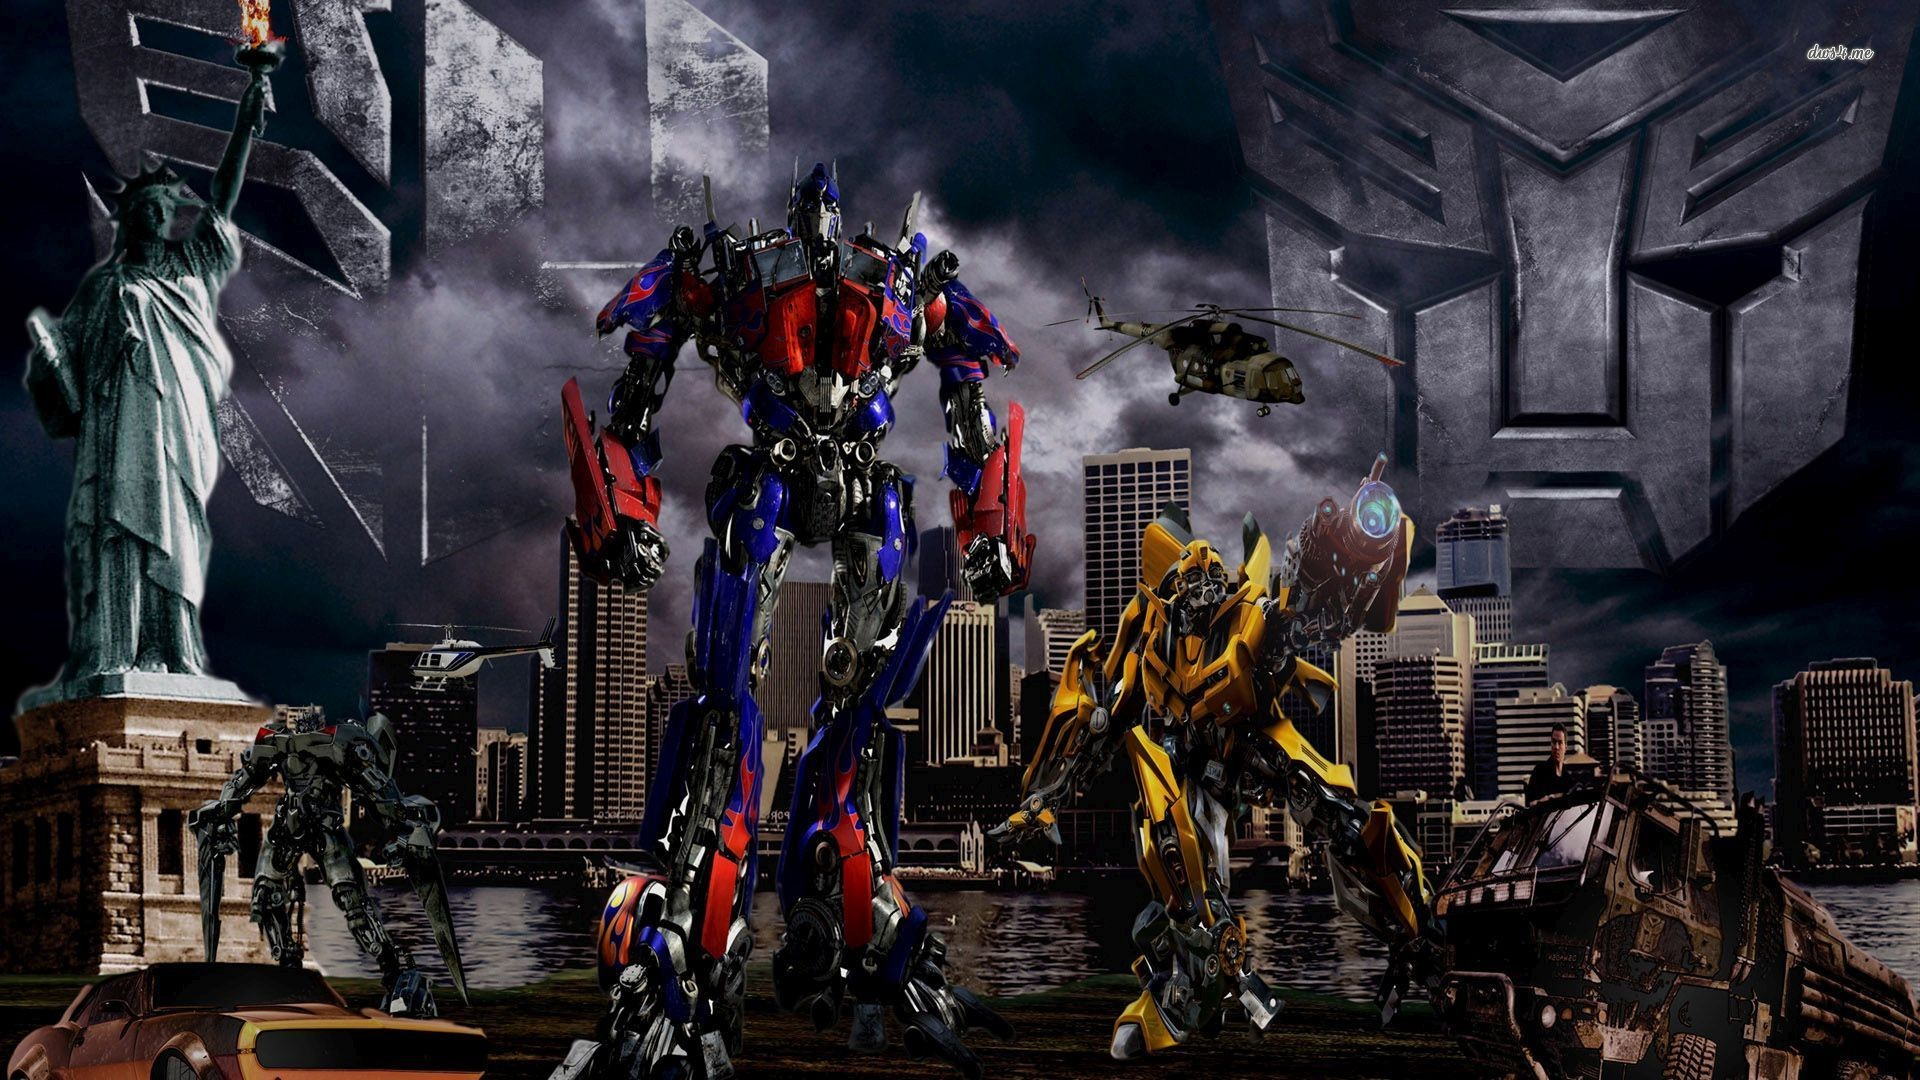 Transformers Fall Of Cybertron 4k Wallpaper Transformers Wallpapers 70 Images